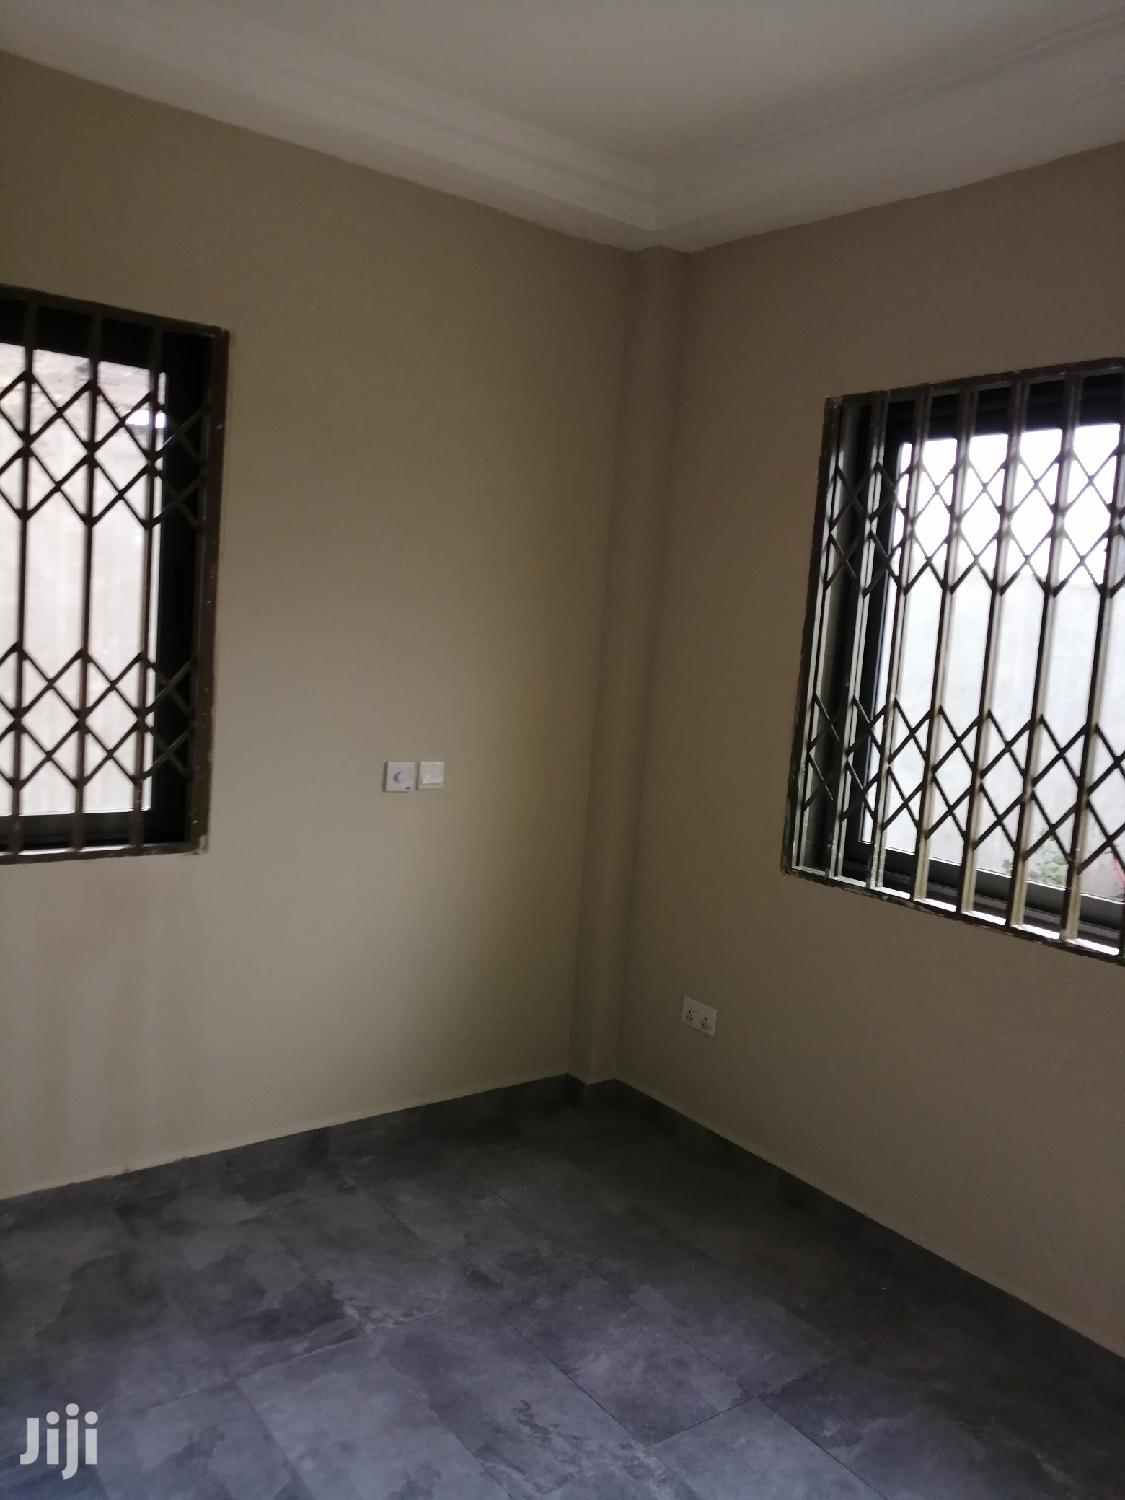 Newly Built 2 Bedroom Ensuit Apartments for Rent at North Legon | Houses & Apartments For Rent for sale in Accra Metropolitan, Greater Accra, Ghana